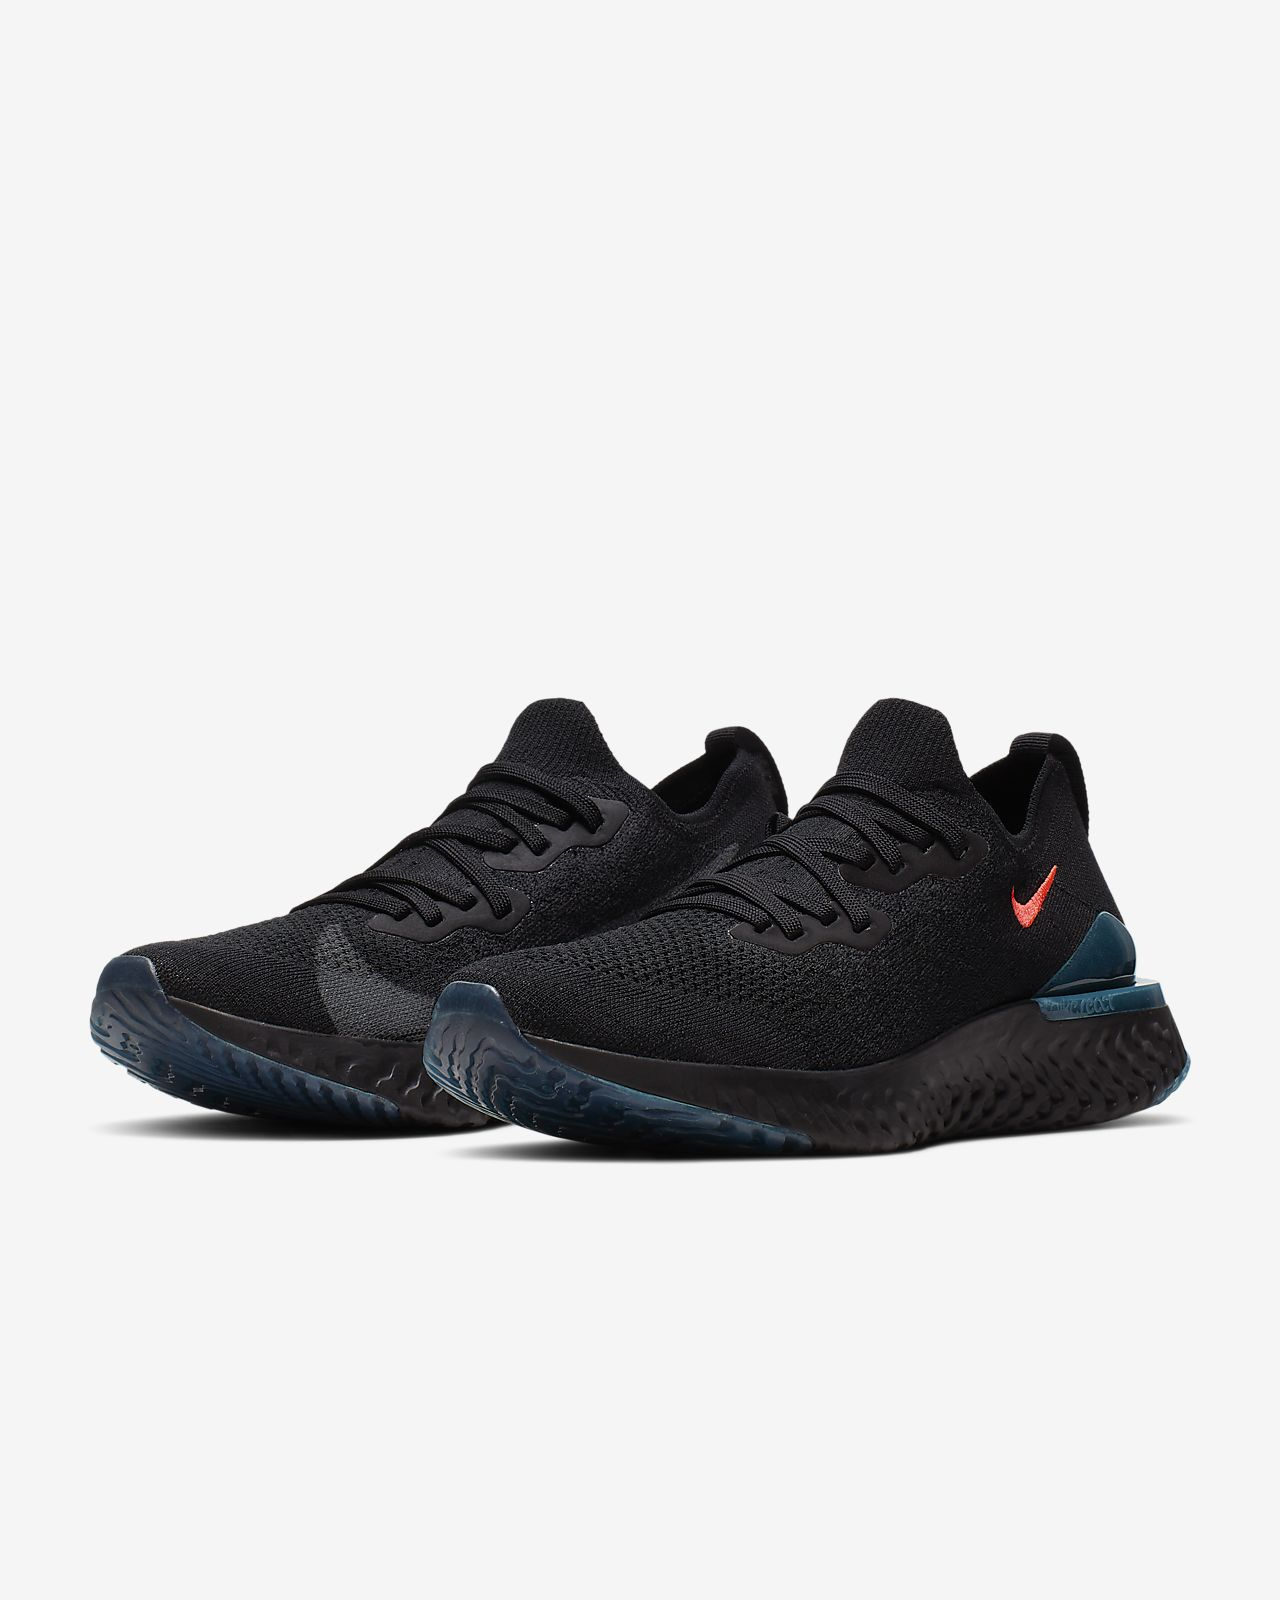 693370ed8313 Nike Epic React FK 2 Späti Men s Running Shoe. Nike.com GB